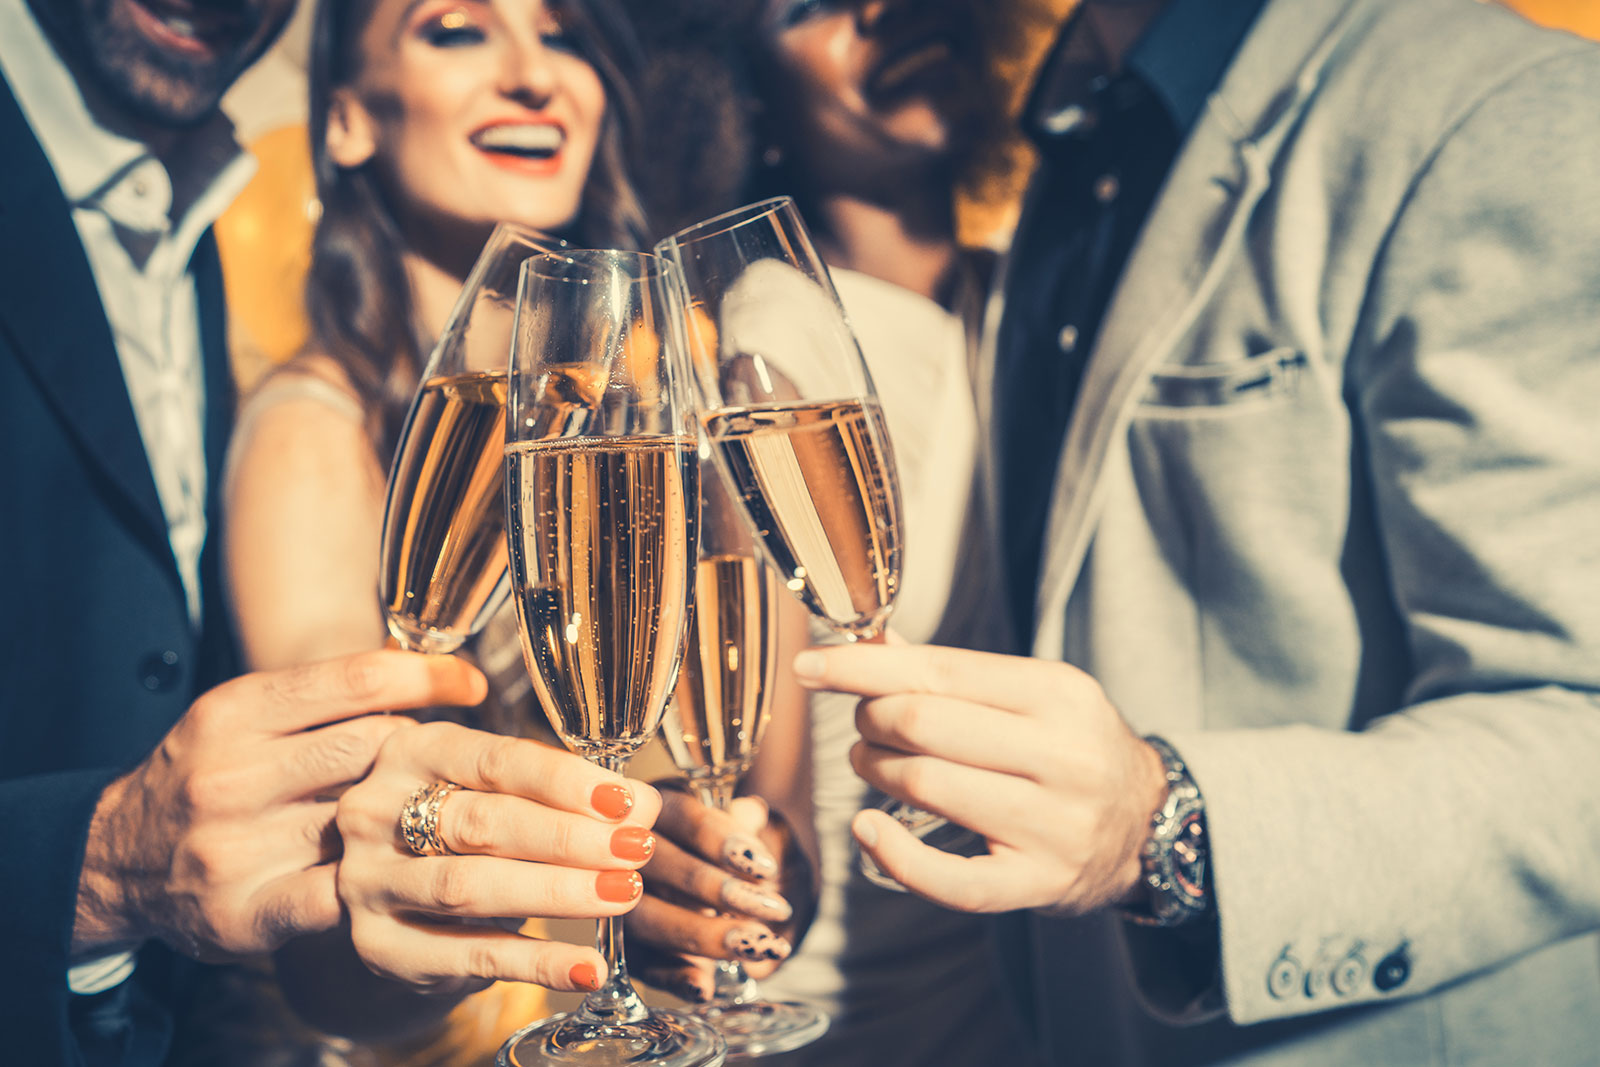 people celebrating holiday clinking glasses filled with champagne